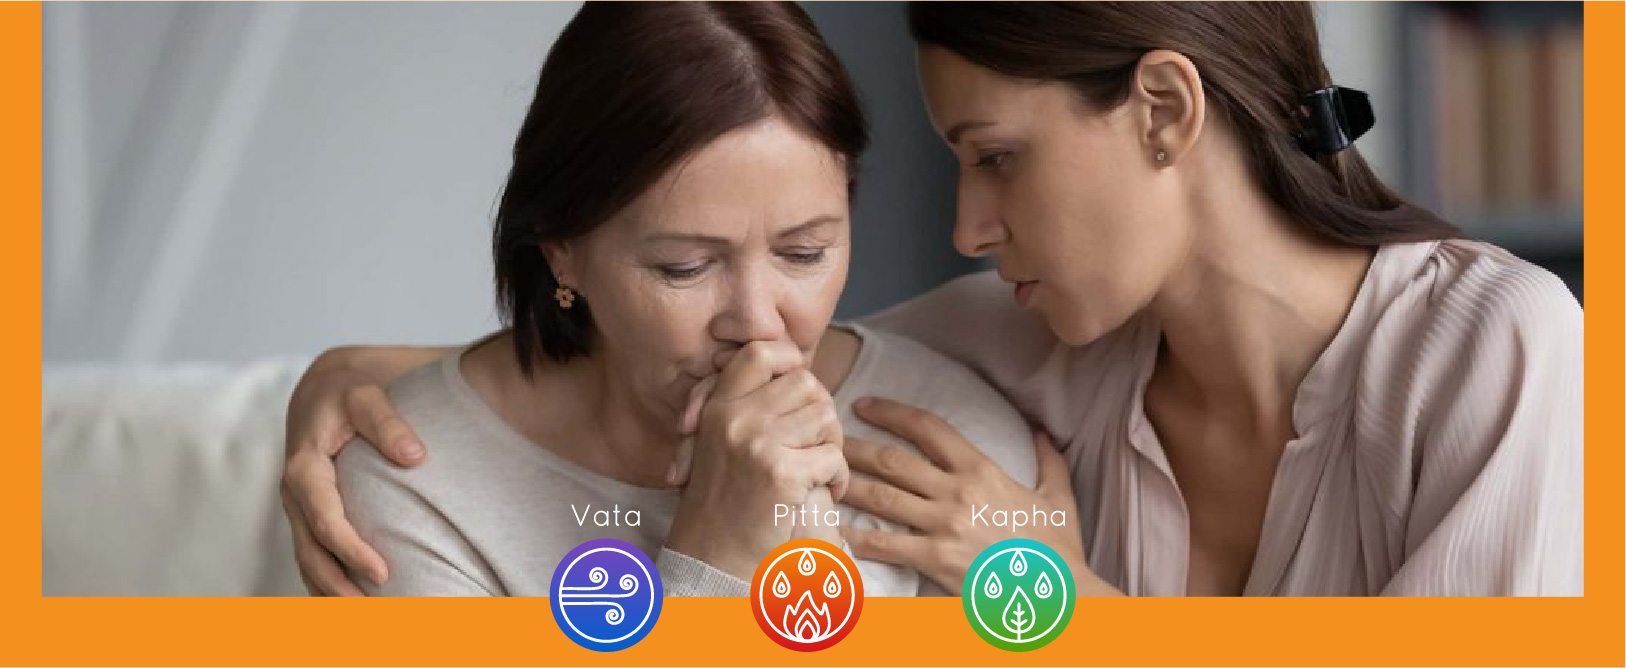 Is Your Health Off Balance? Understand The Concept Of Vikruti